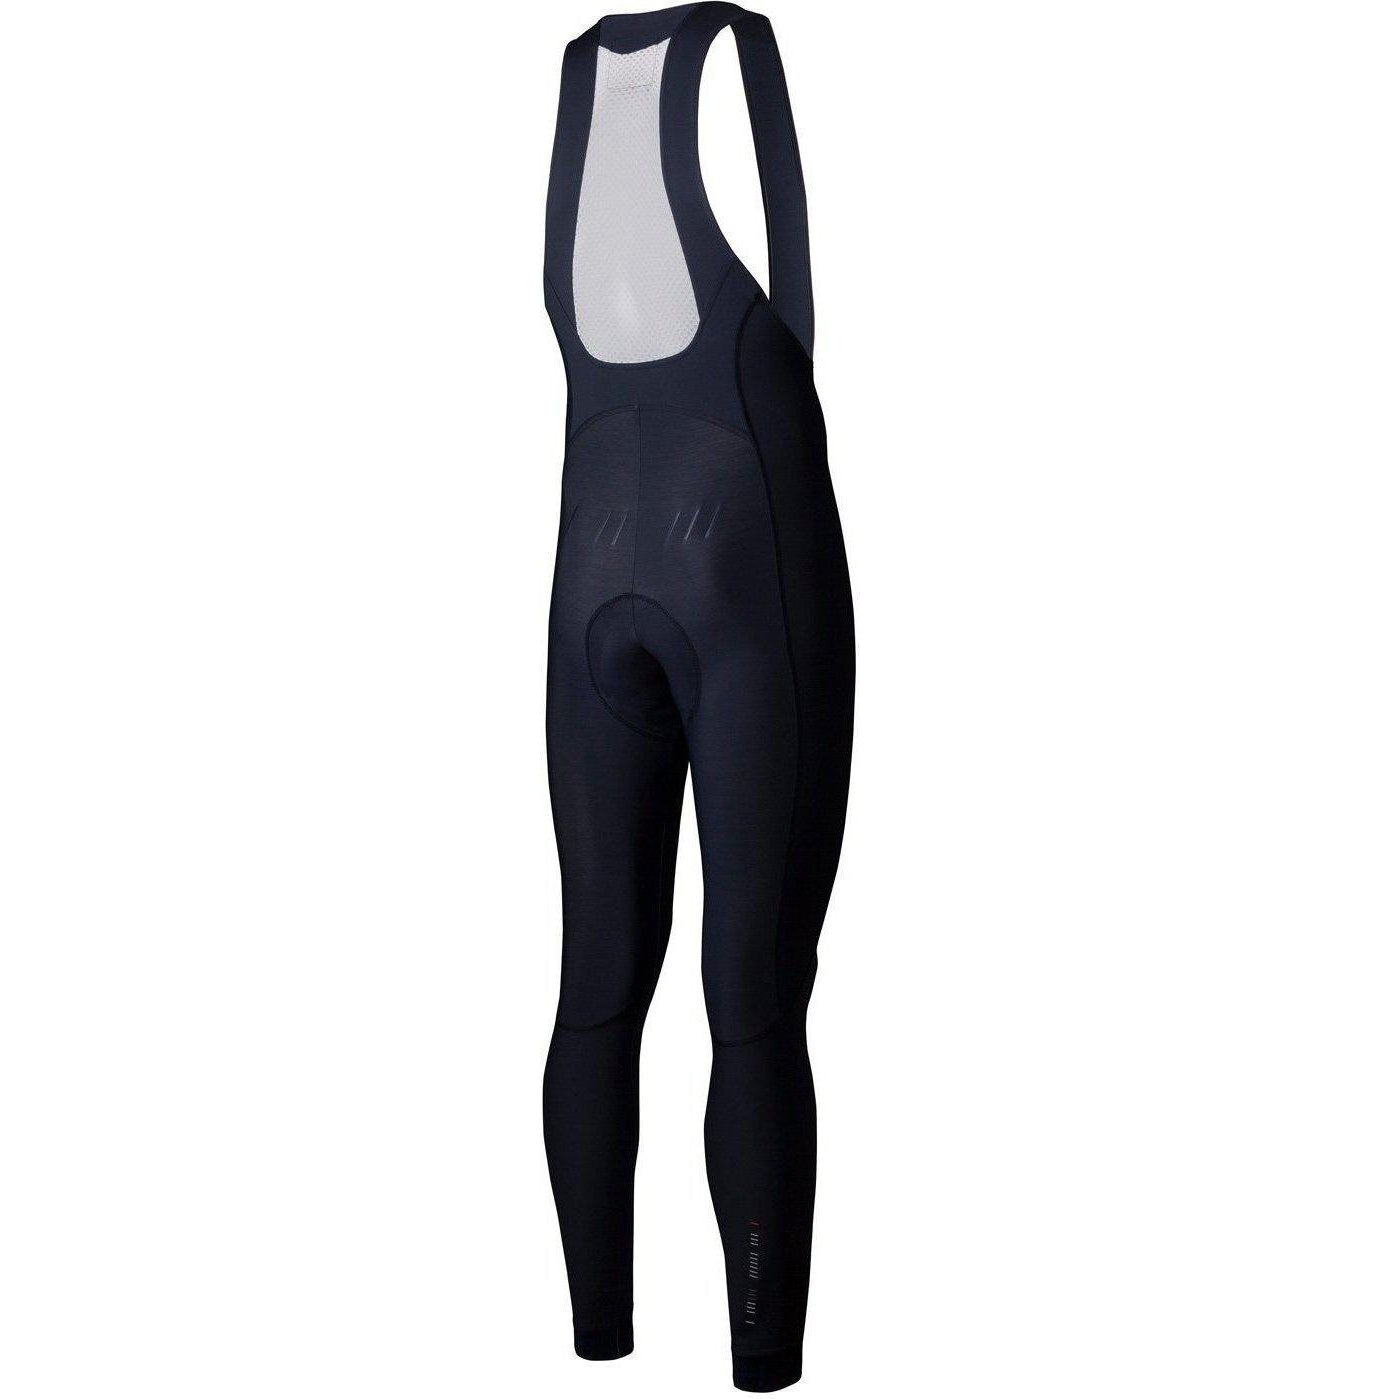 Chpt3 Origin 1.13 Bibtights